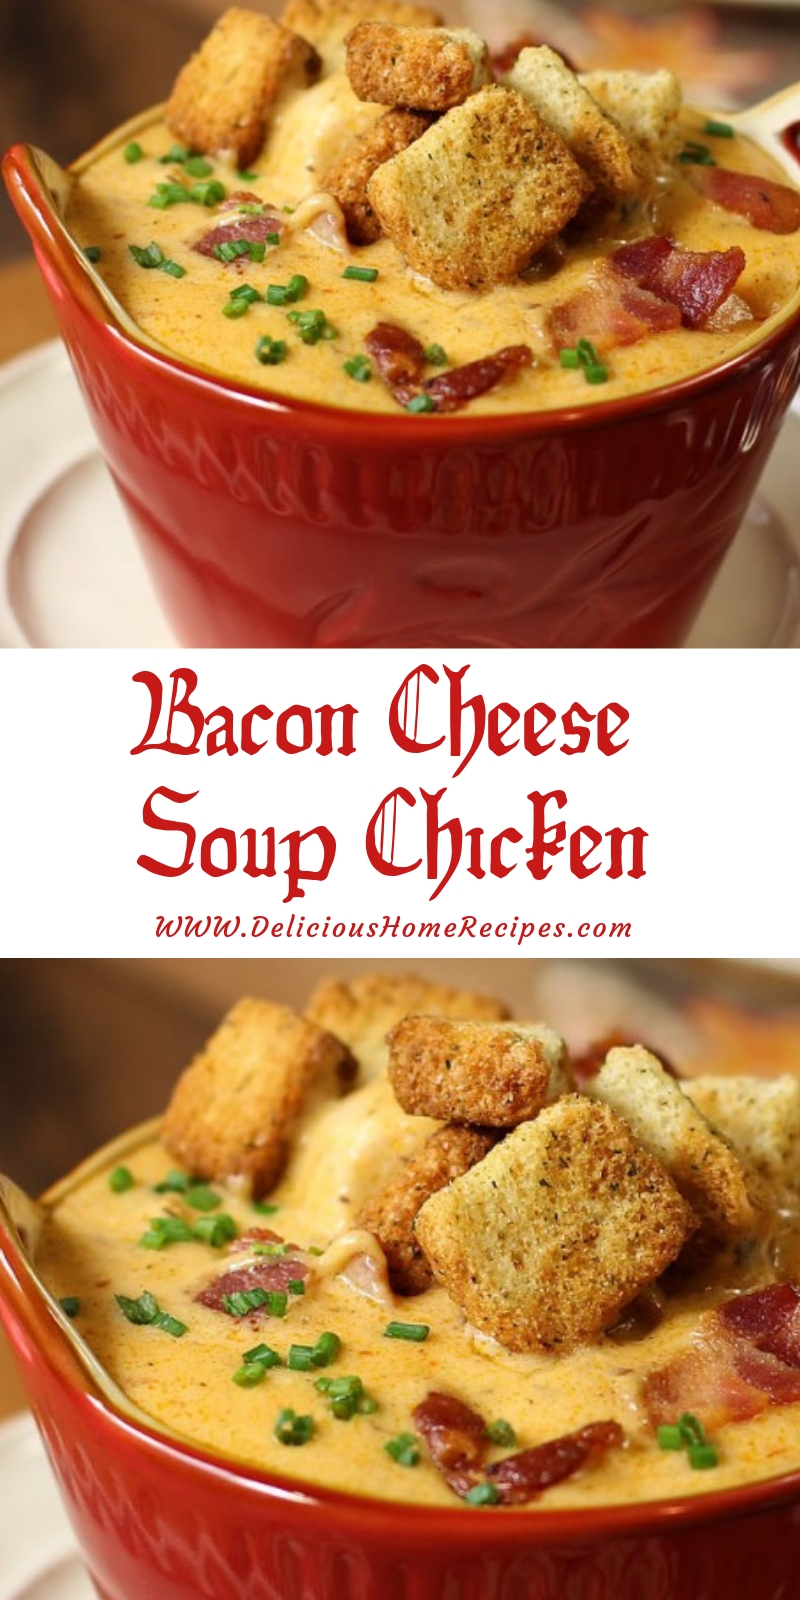 Bacon Cheese Soup Chicken #christmas #lunch